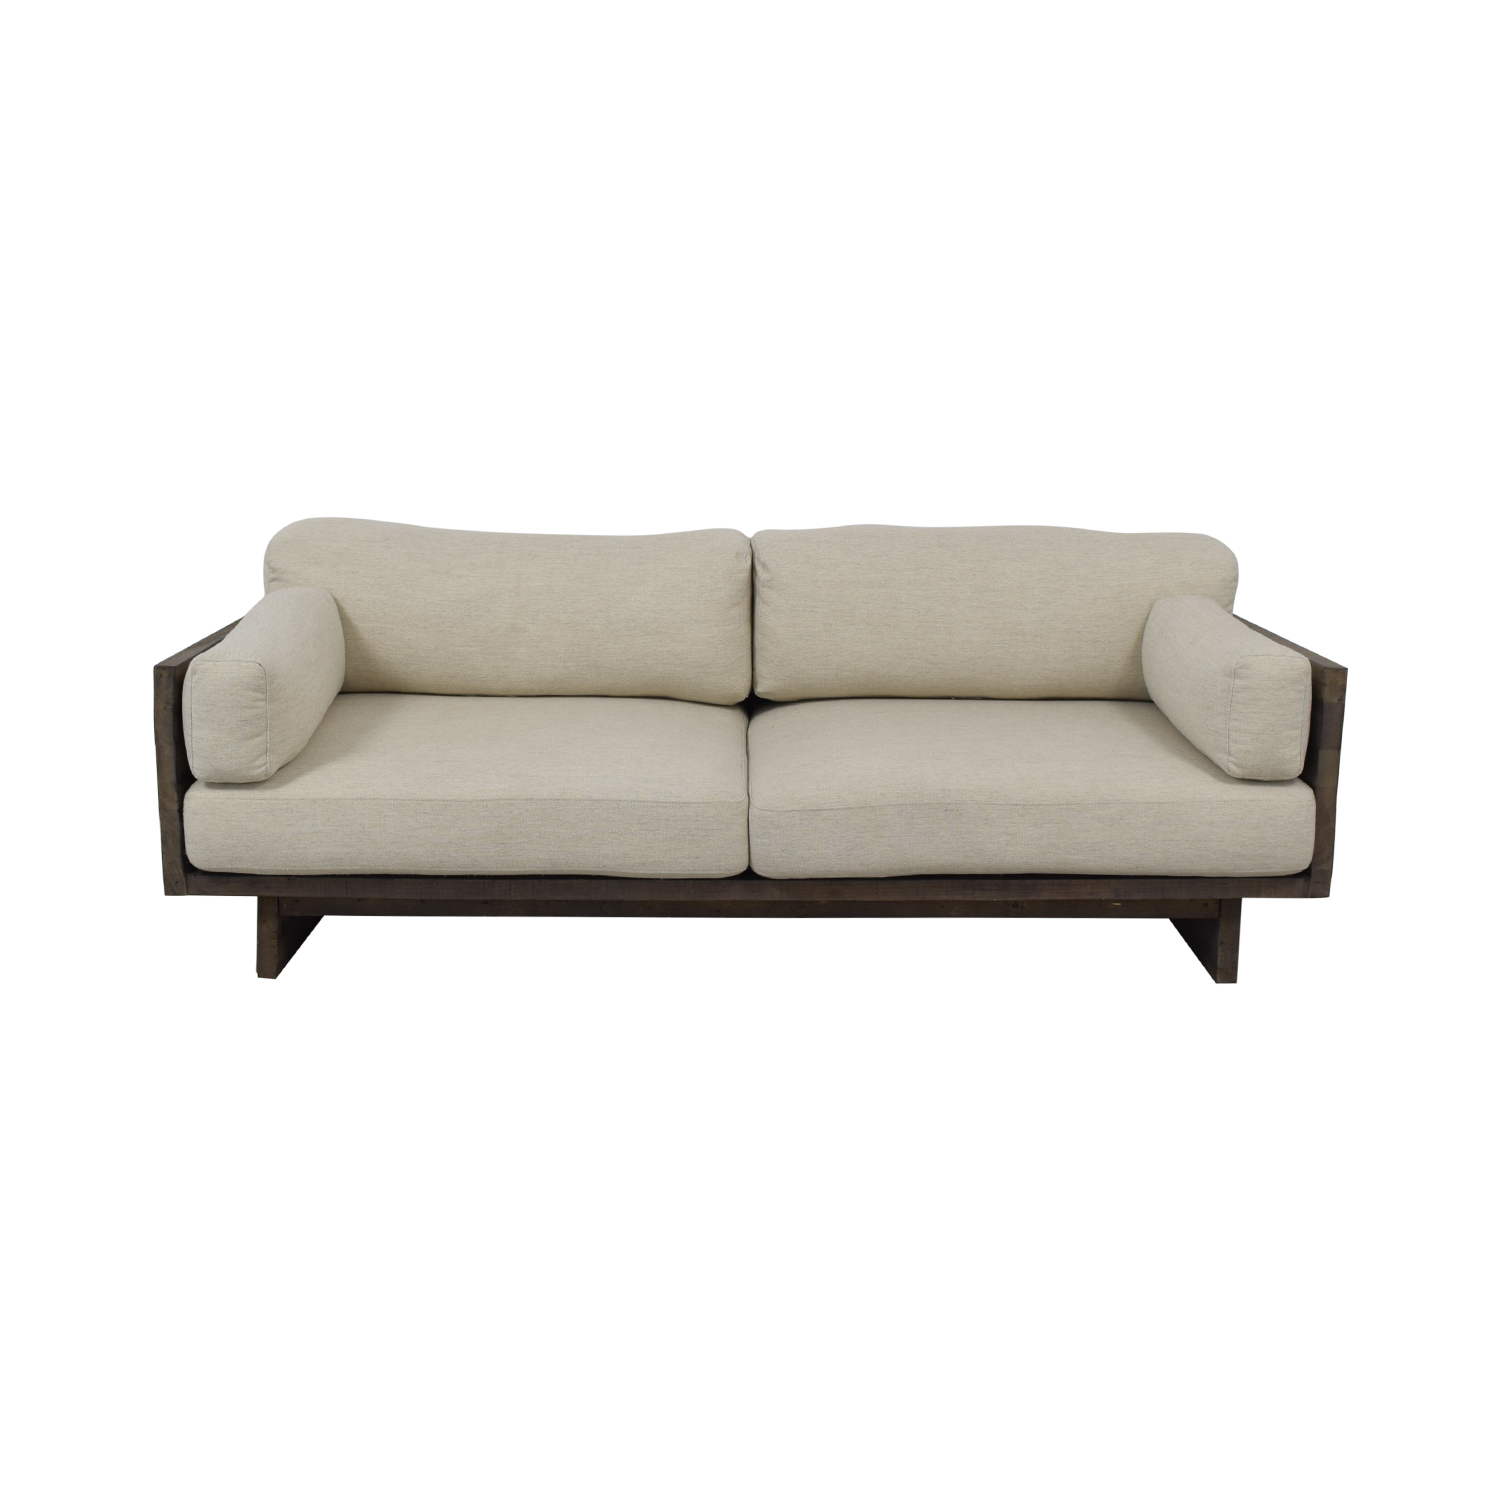 West Elm West Elm Emmerson Reclaimed Wood Sofa Sofas